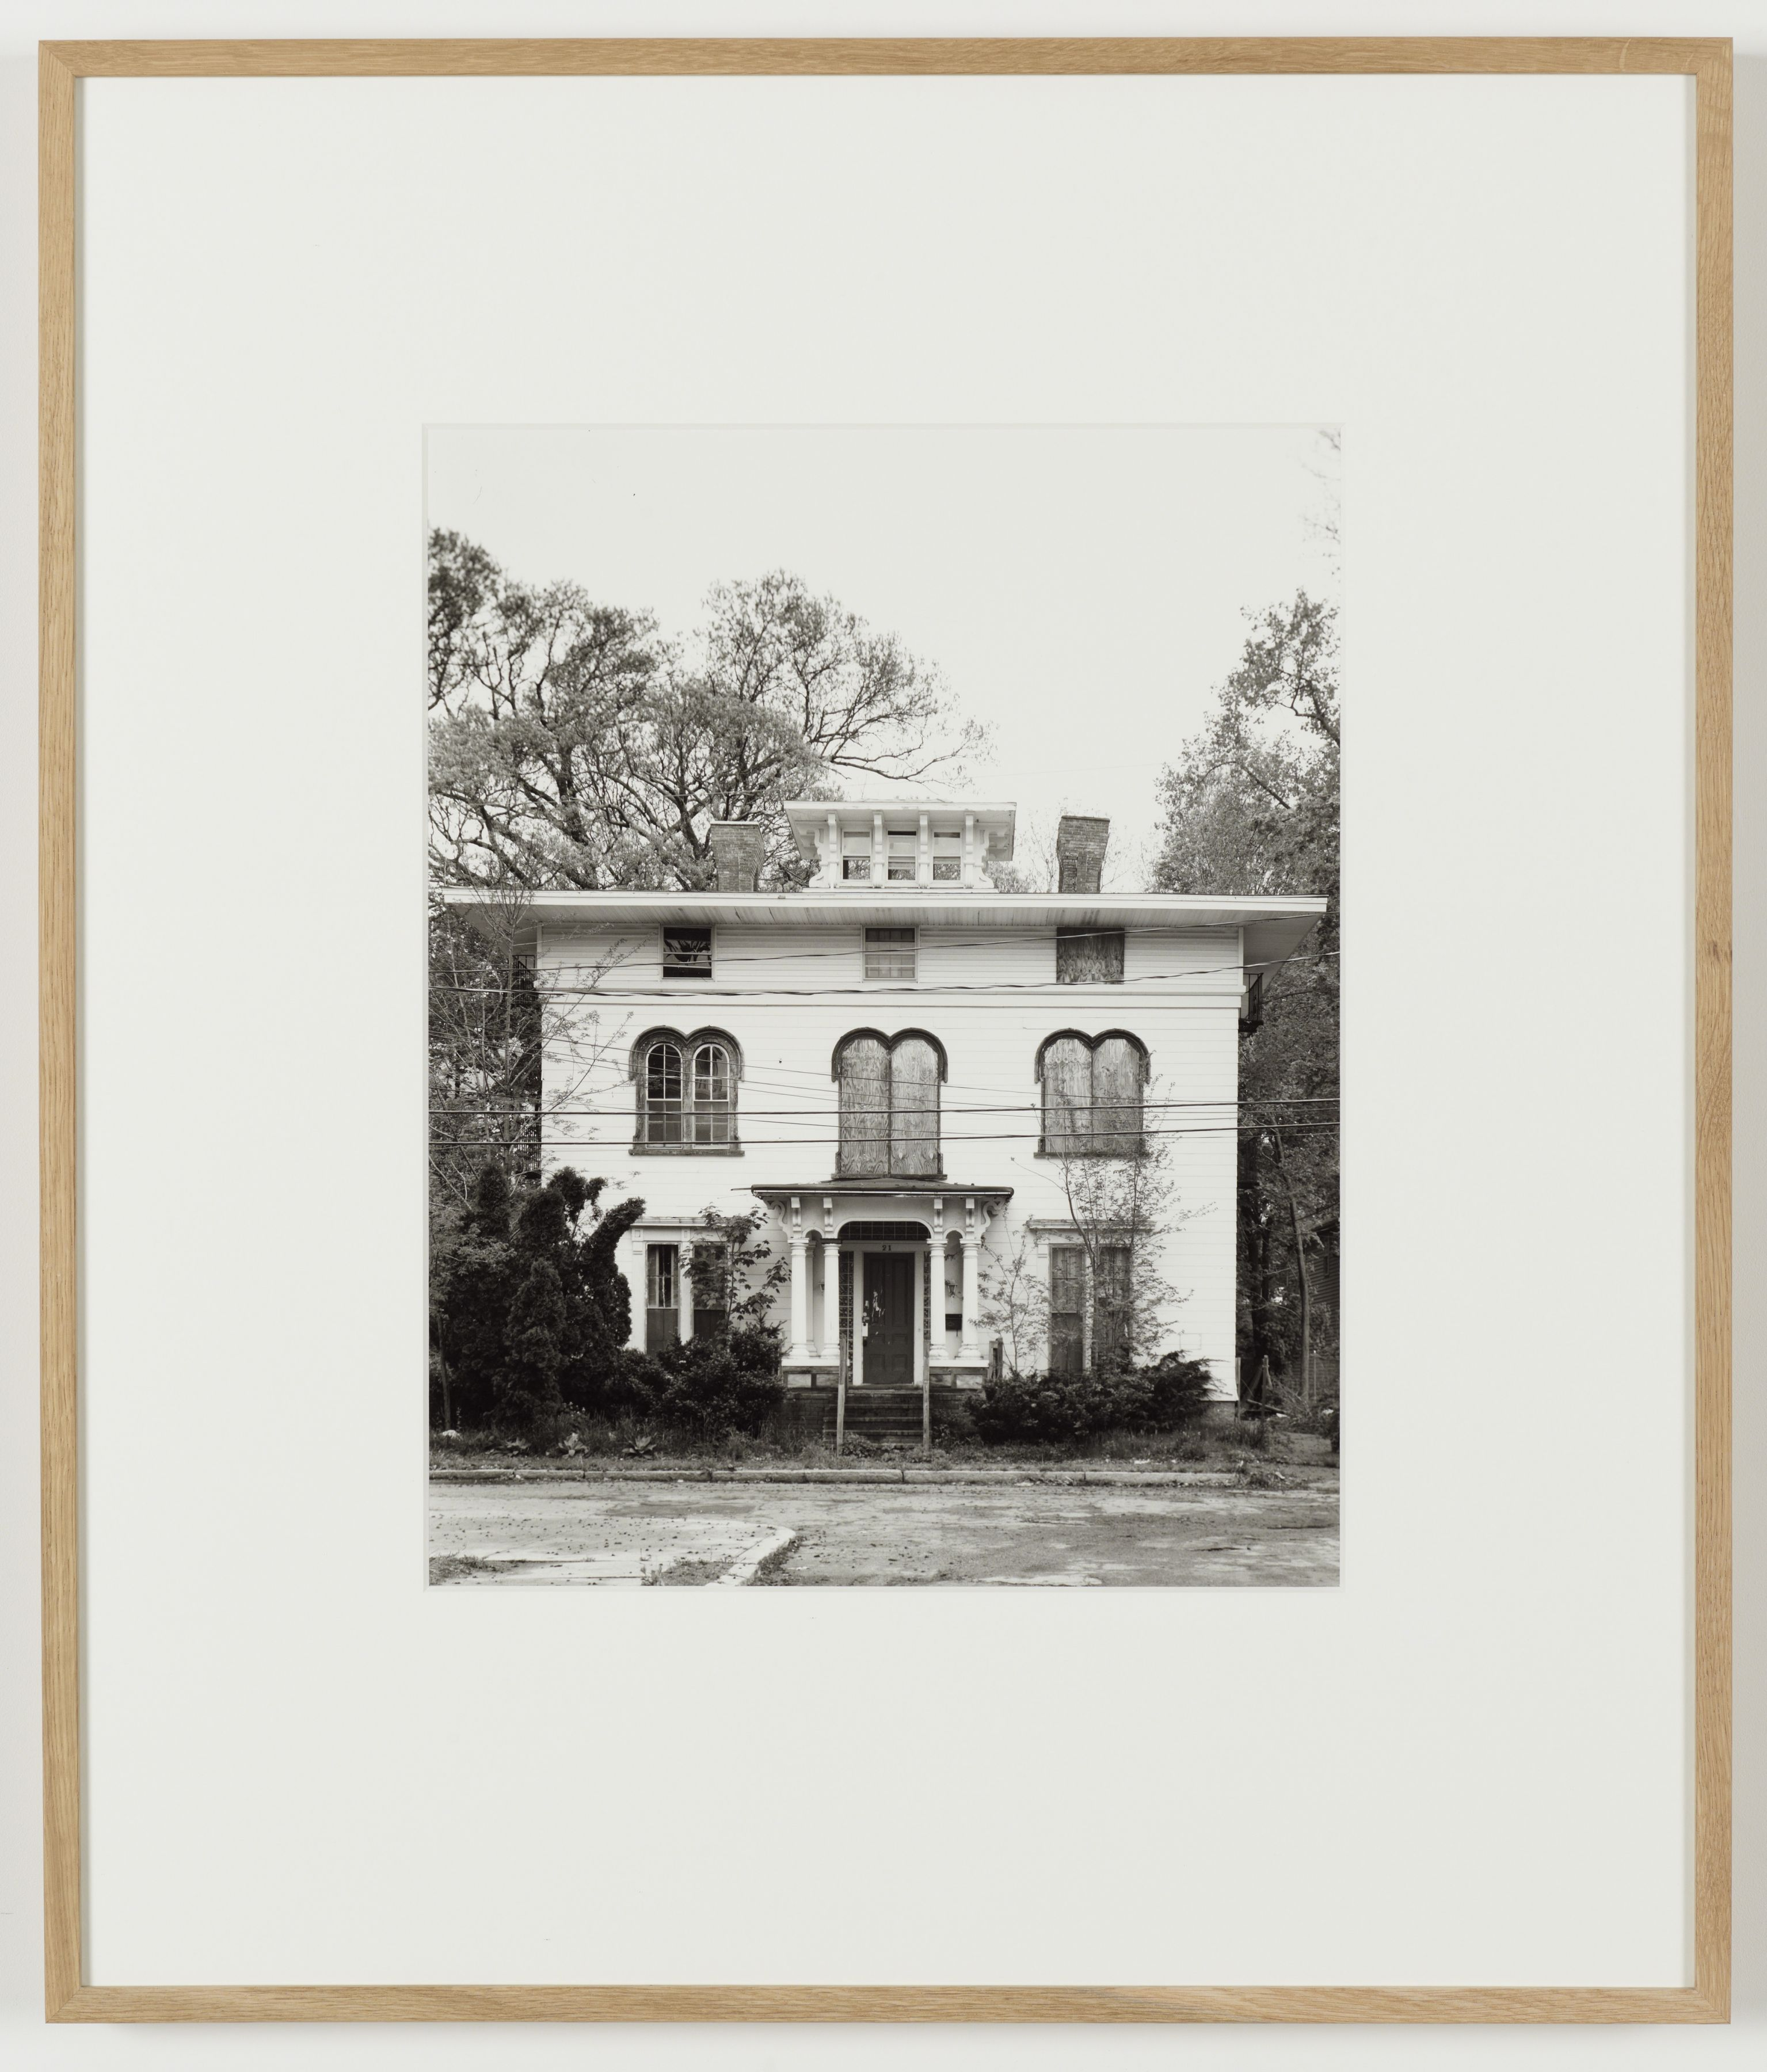 Joachim Koester, Some Boarded Up Houses, Boston #1, 2009-2013, Silver gelatin print, 27 x  22 5/8 inches (68.6 x 57.5 cm)